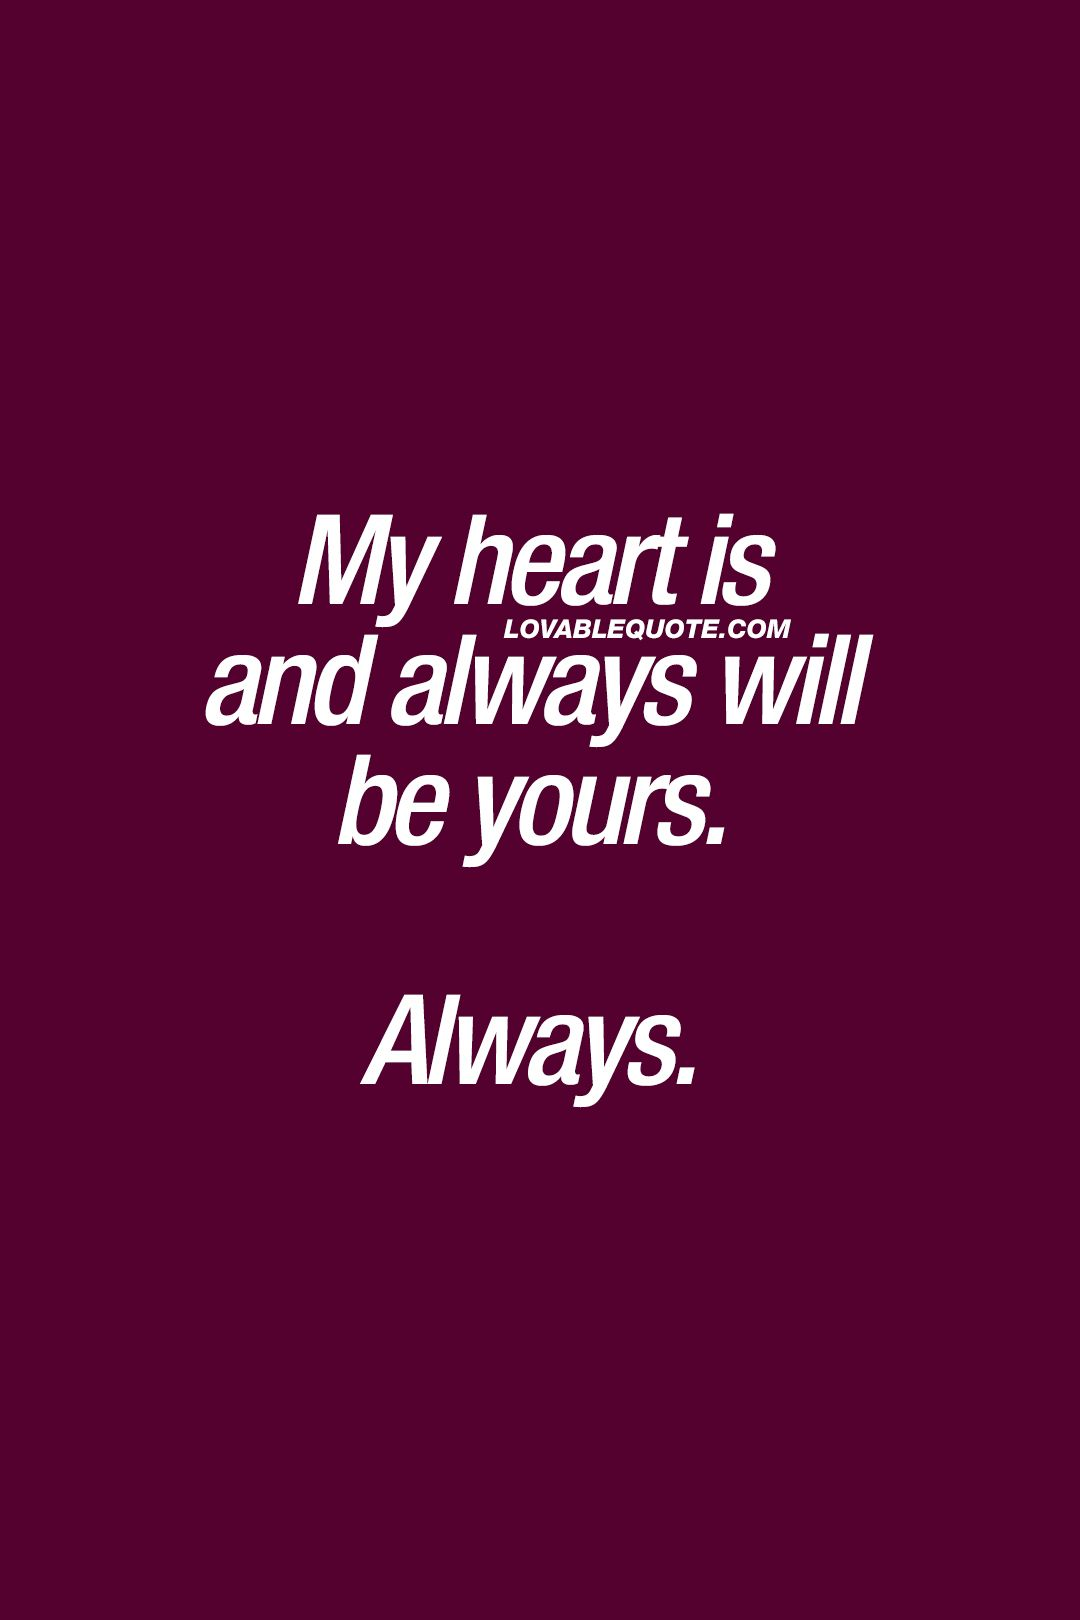 True Love Relationship Quotes My heart is and always will be yours. Always. ❤ #truelove  True Love Relationship Quotes